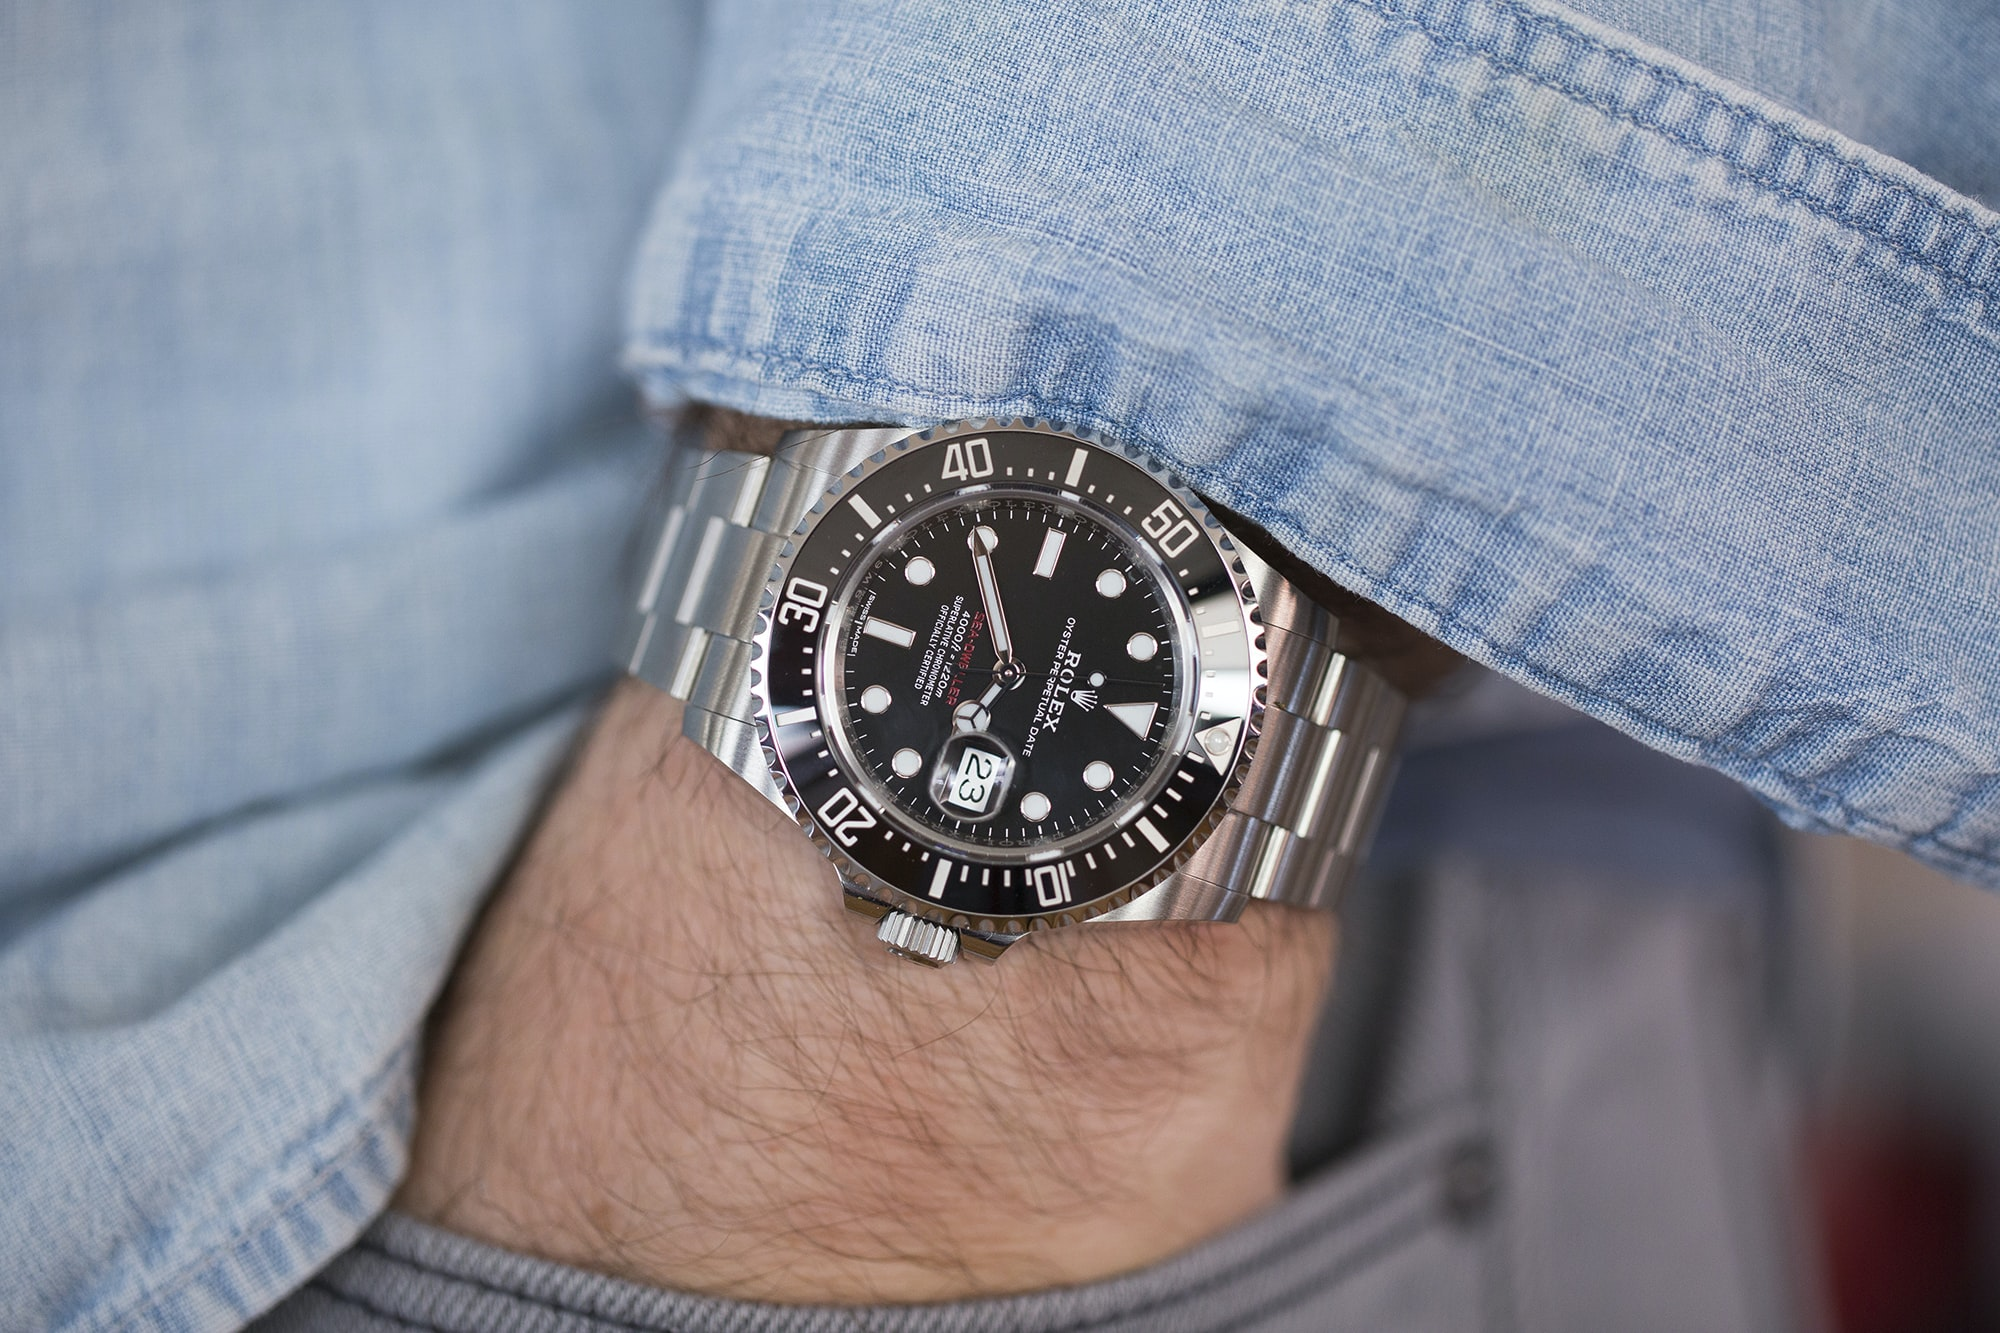 A Week On The Wrist: The Rolex Sea-Dweller Reference 126600 A Week On The Wrist: The Rolex Sea-Dweller Reference 126600  20011569 copy